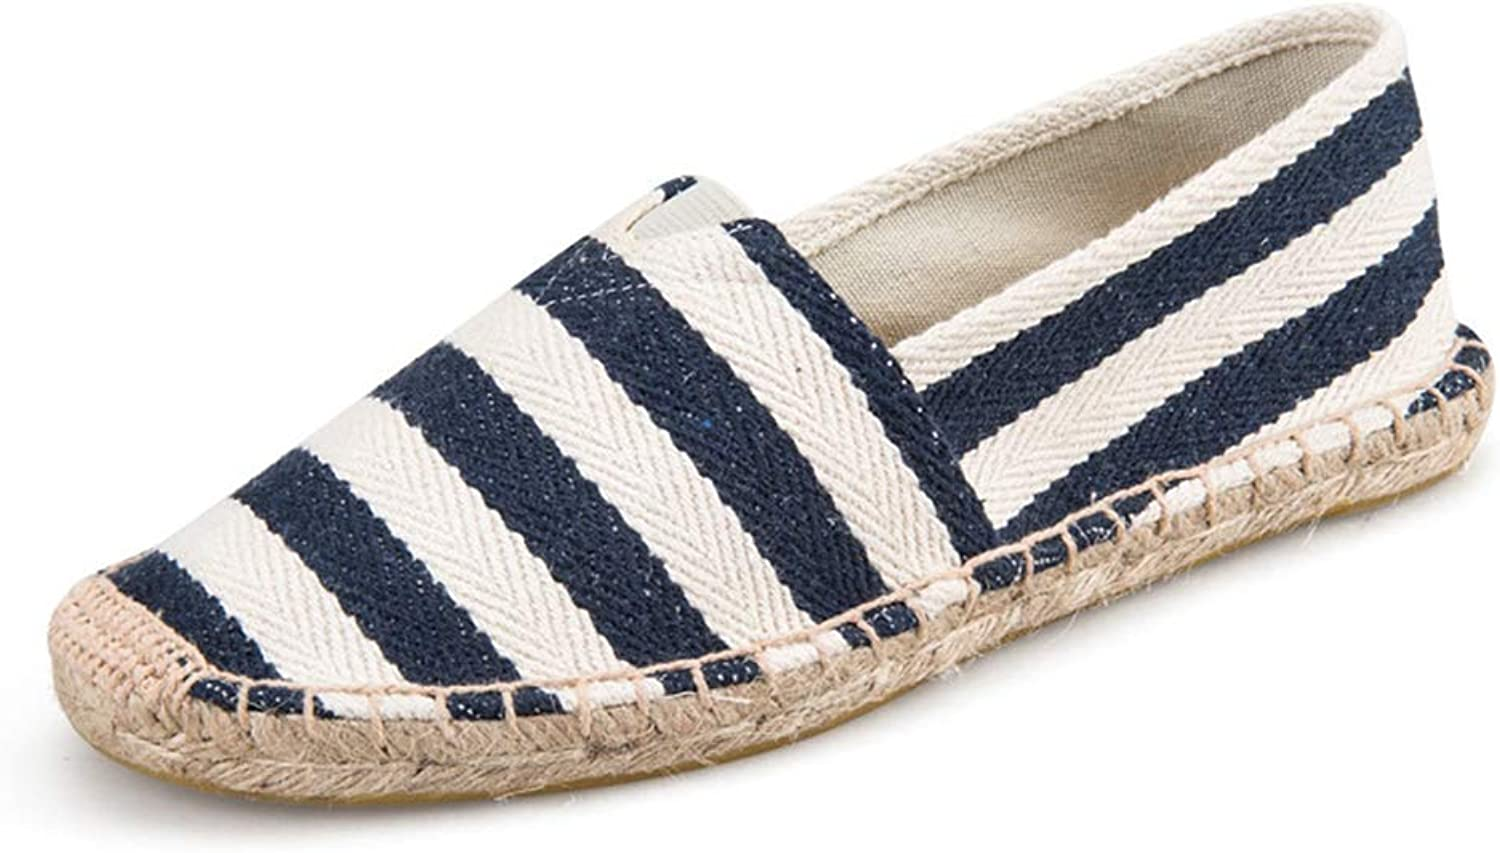 T-JULY Women's Canvas Flats shoes Striped 2018 Fashion Espadrilles Slip-On Flat Breathable Summer Casual Loafers